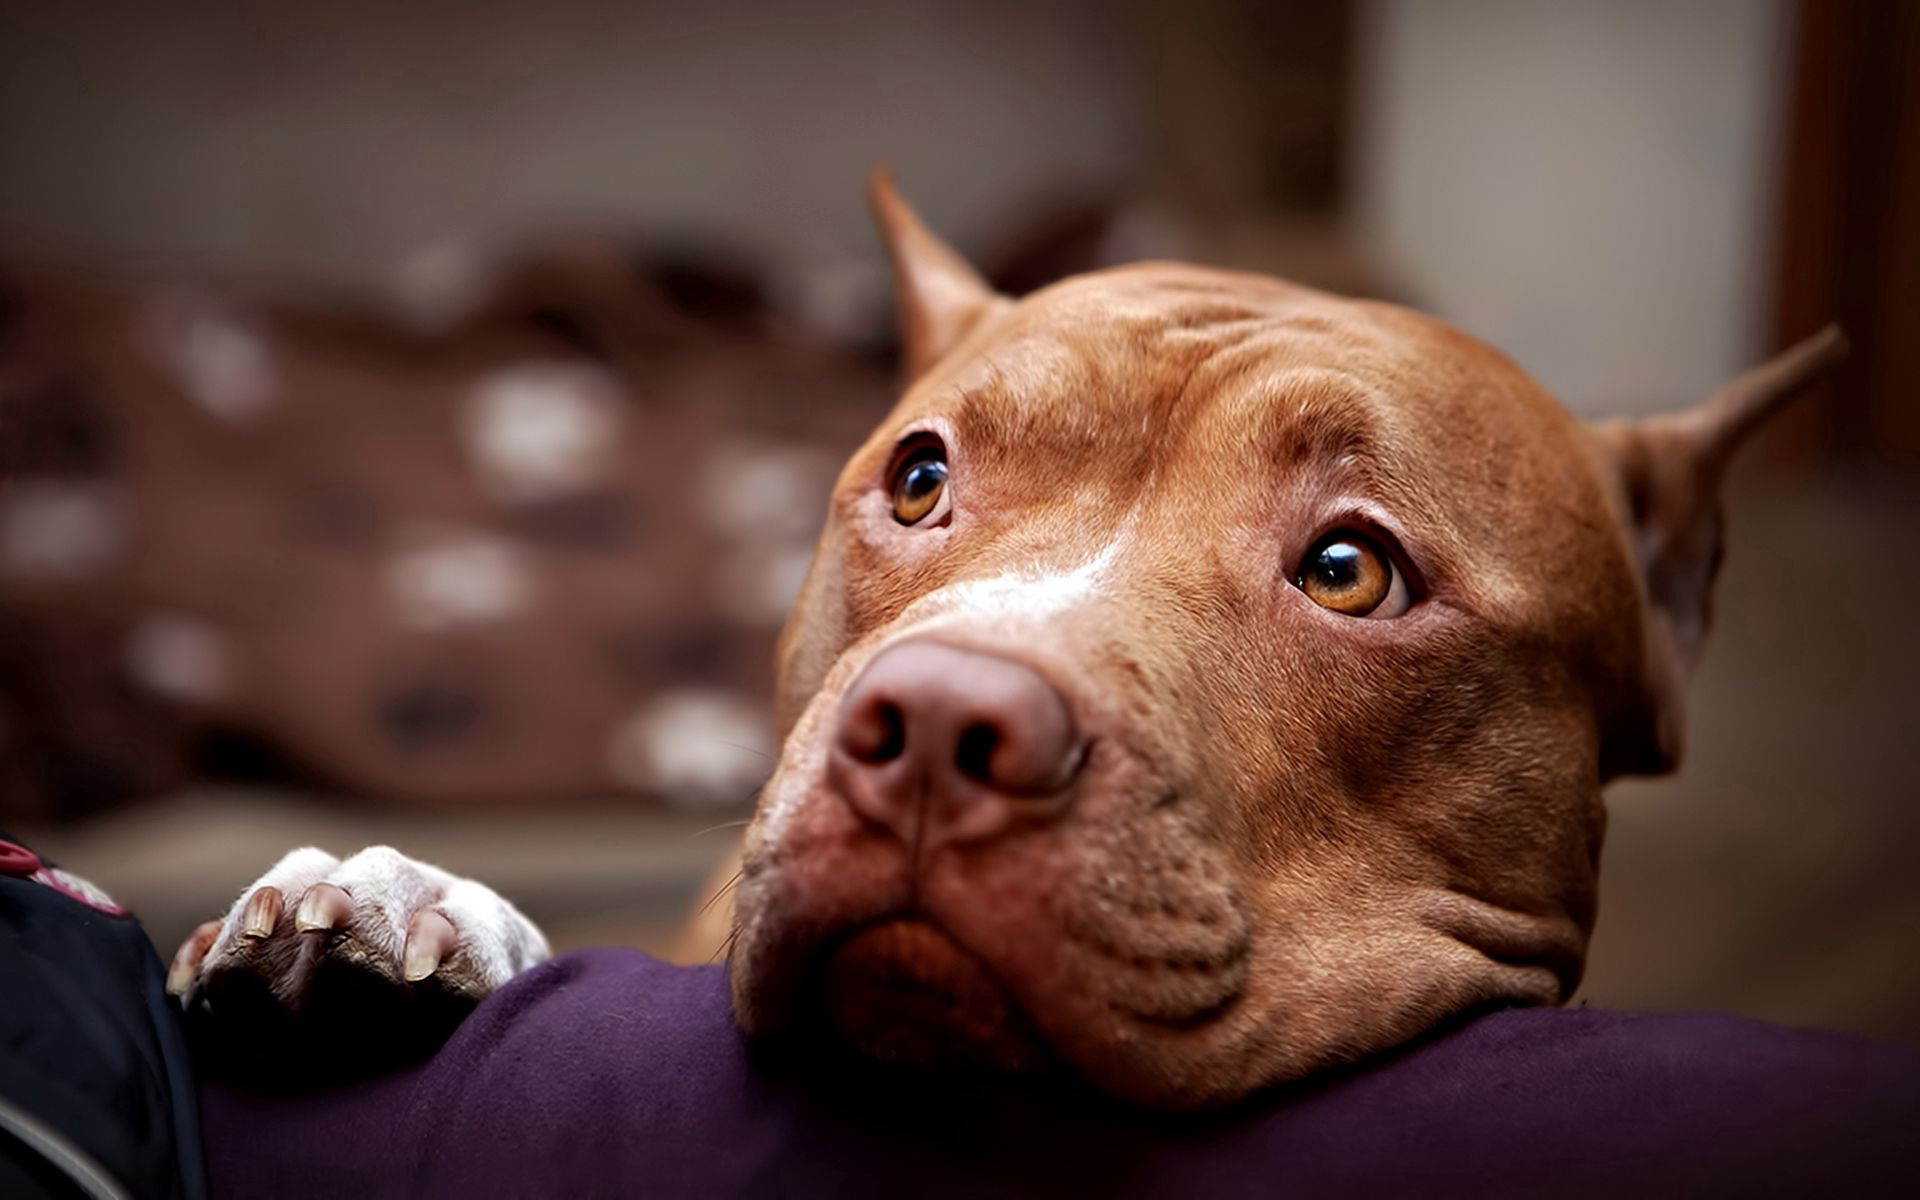 127991 download wallpaper Dog, Animals, Muzzle, Sadness, Sight, Opinion, Sorrow, Pitbull, Pit Bull screensavers and pictures for free